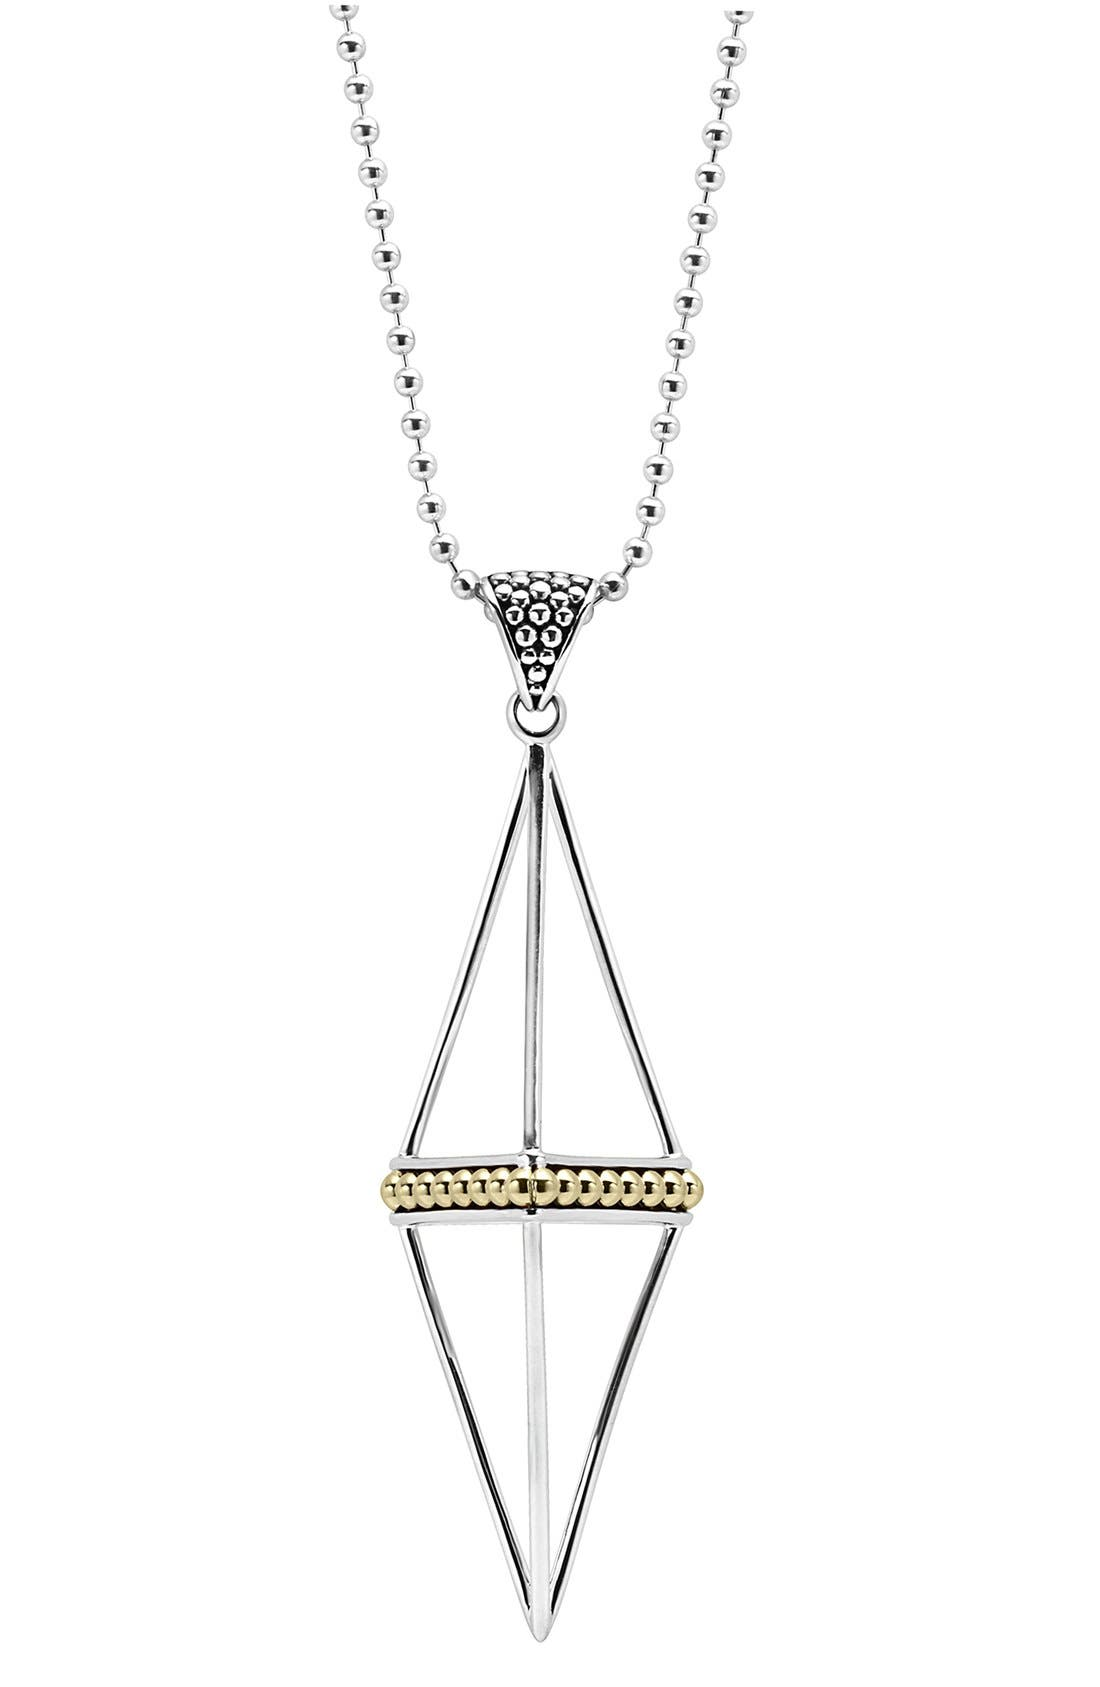 'KSl' Pyramid Pendant Necklace,                             Alternate thumbnail 2, color,                             040